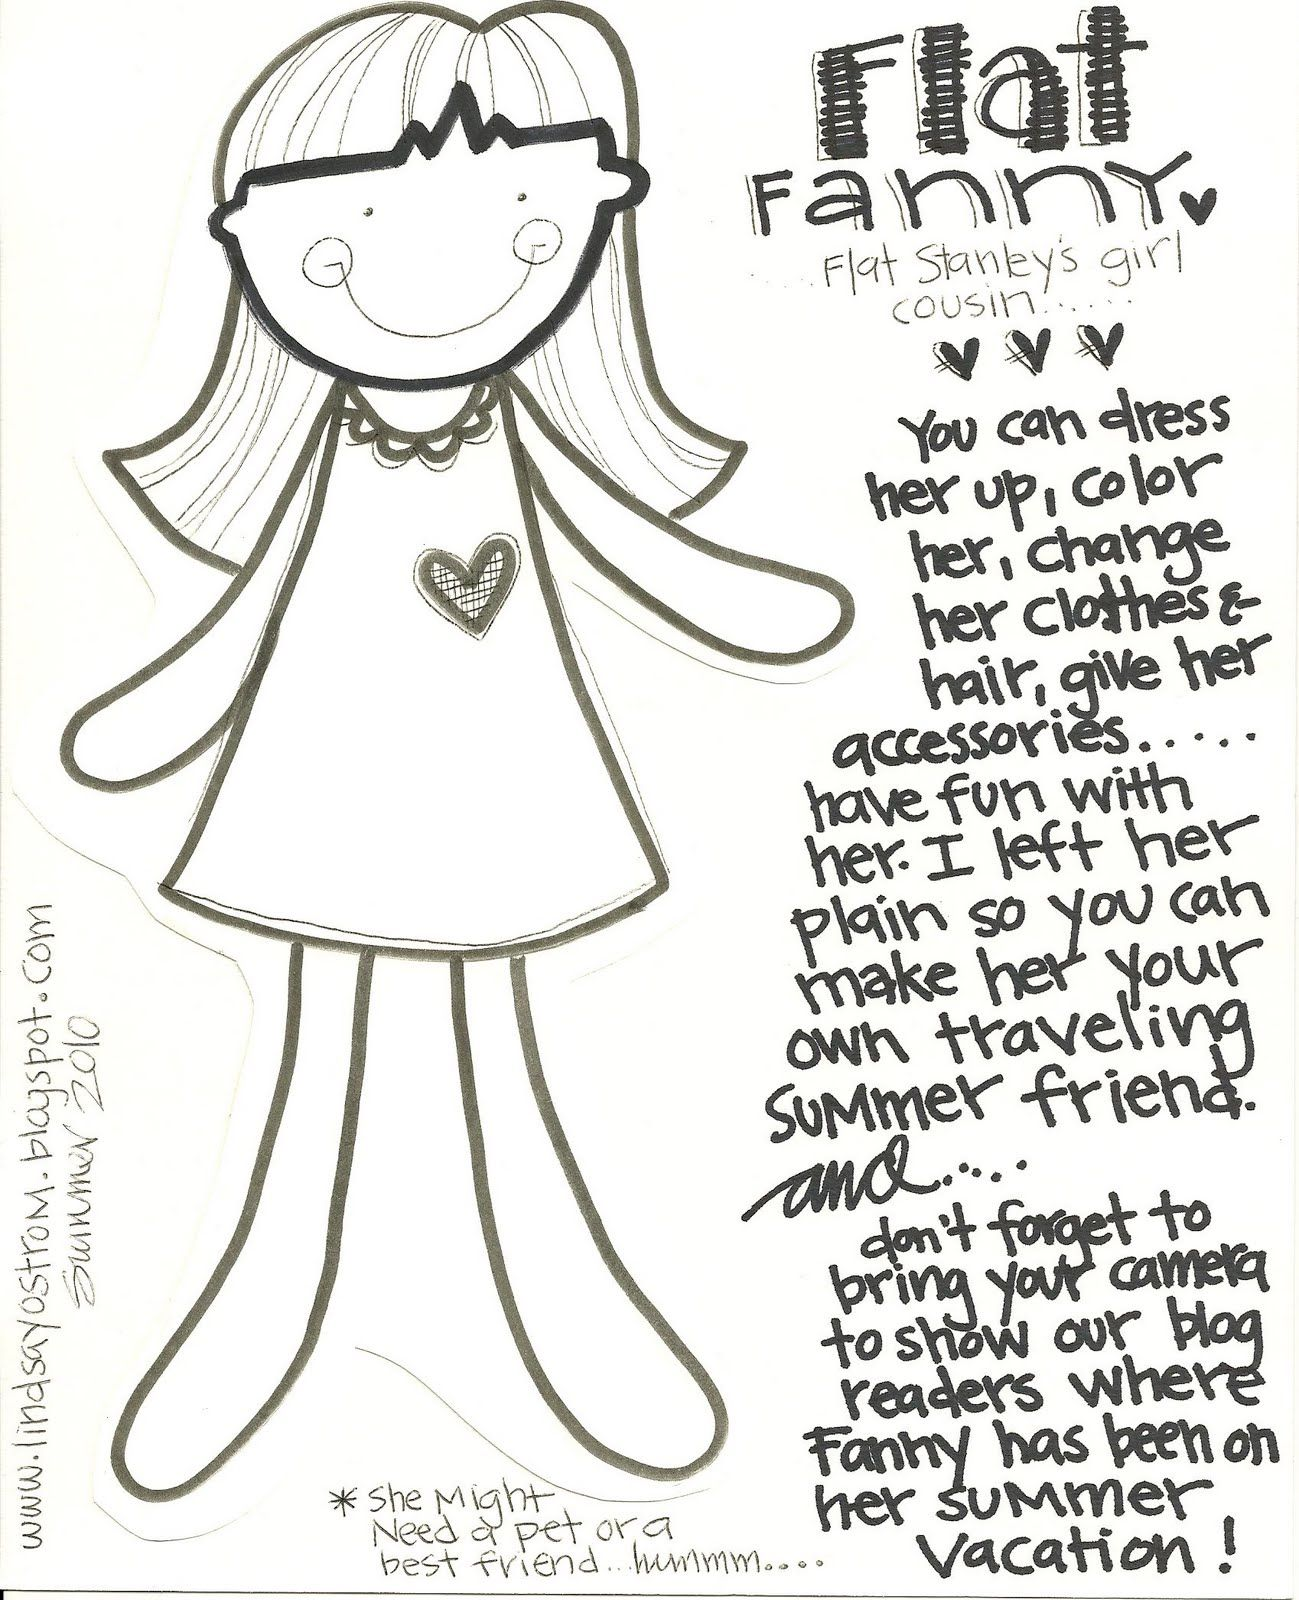 photo relating to Flat Stanley Printable Templates called Flat Stanley Template